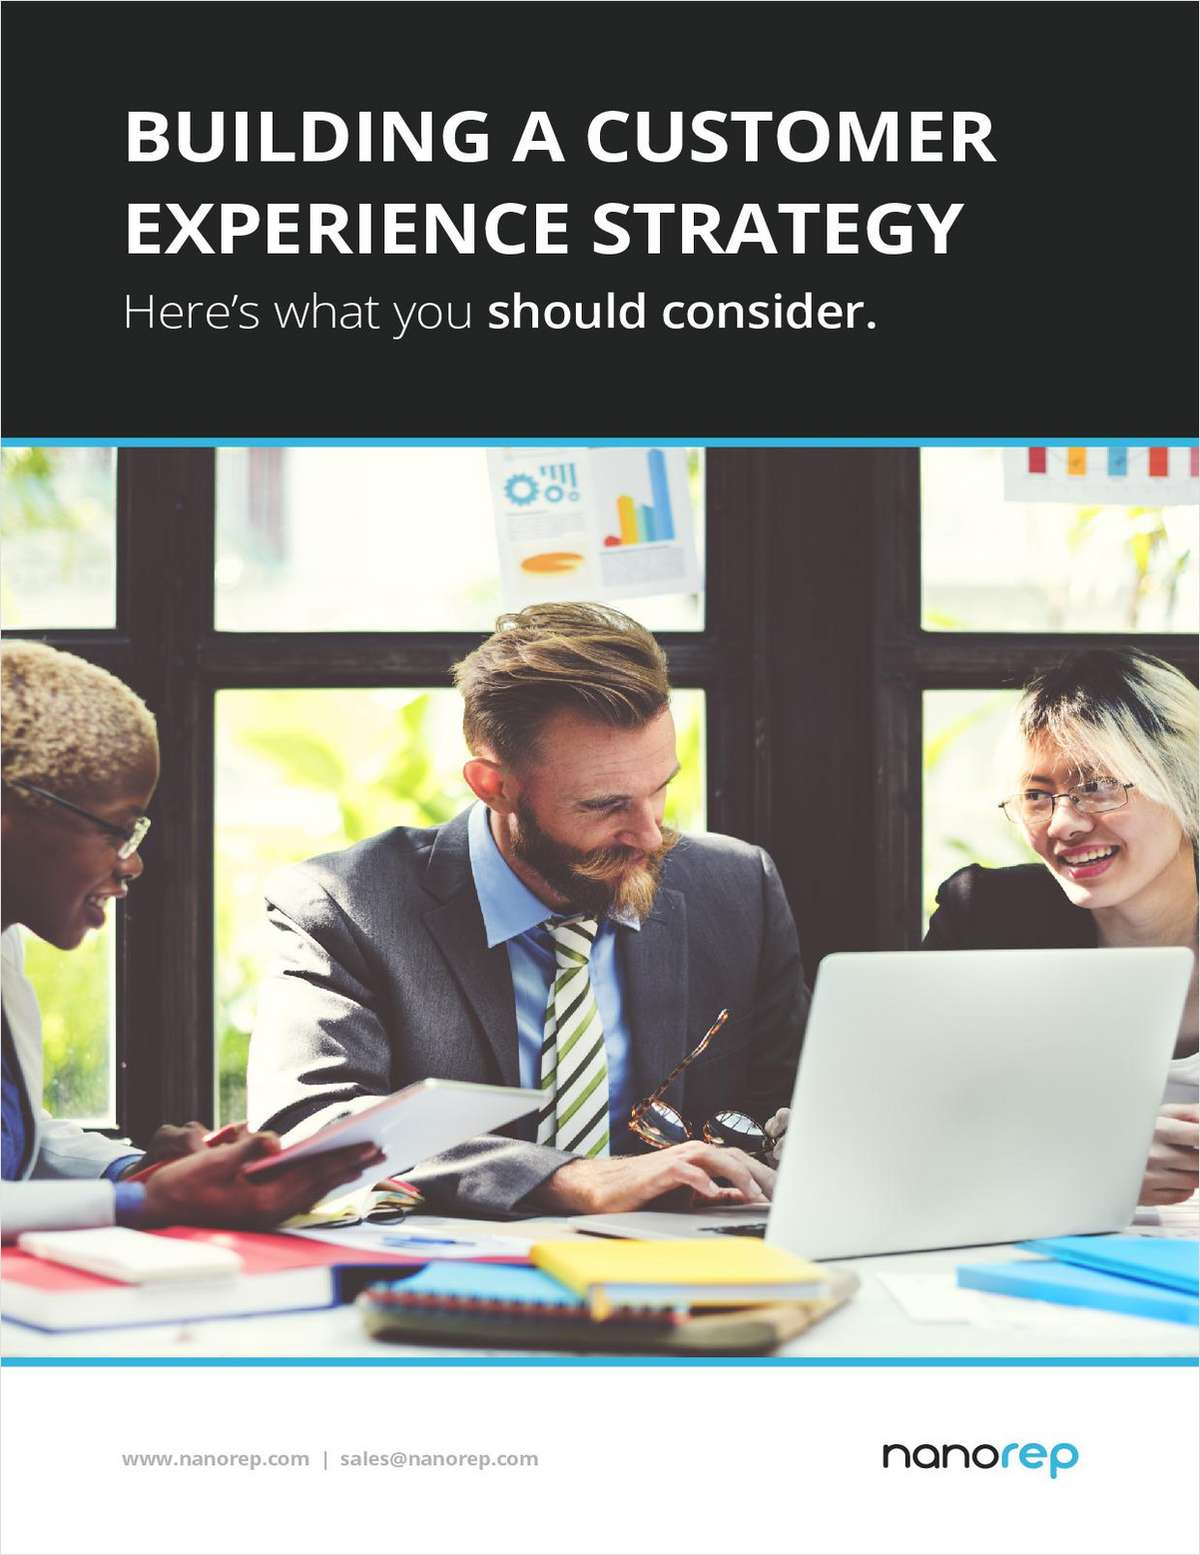 Building a Customer Experience Strategy